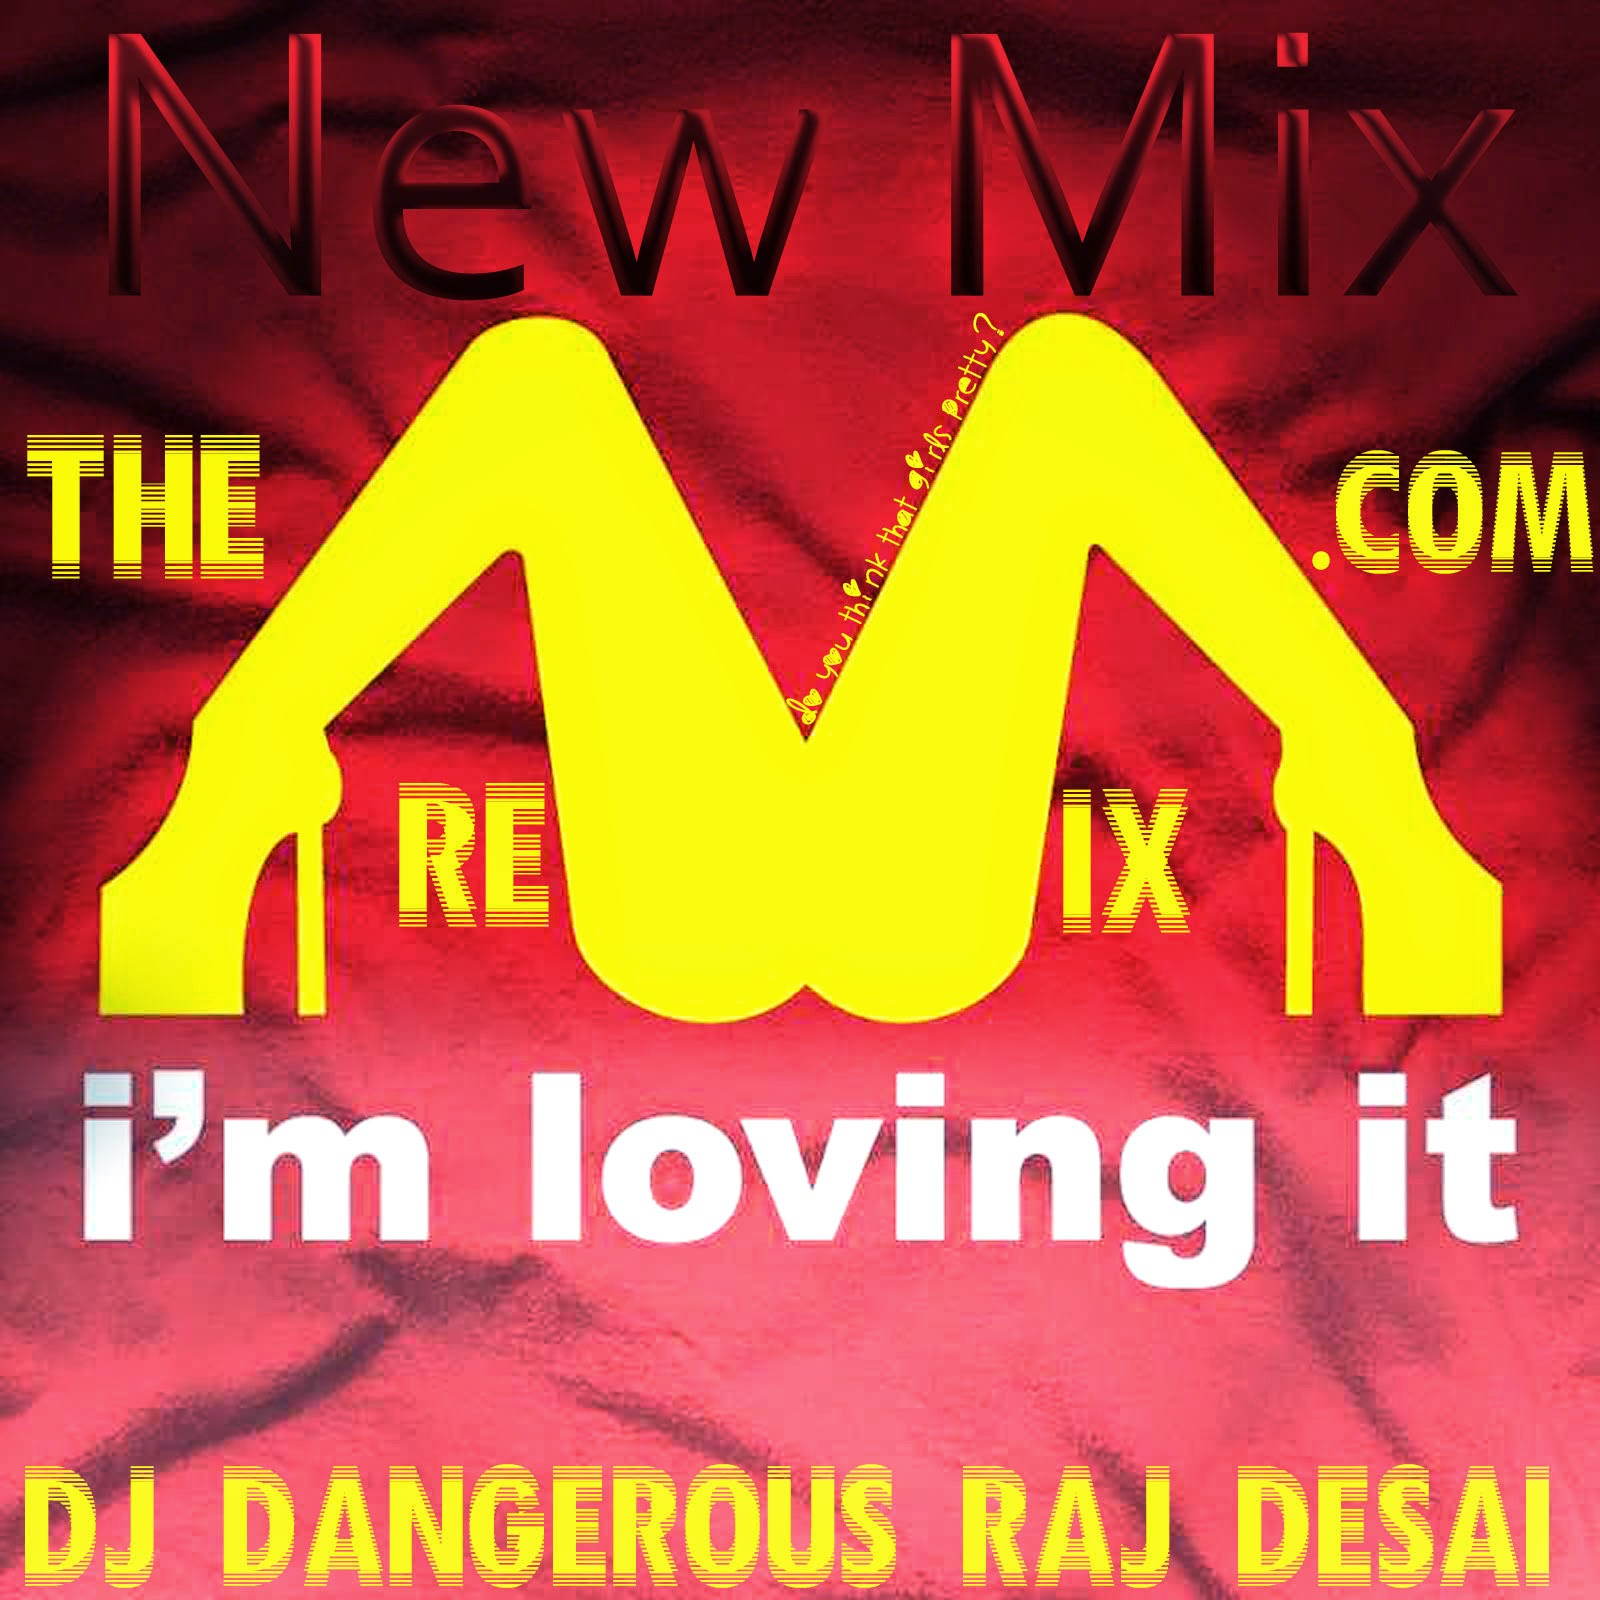 Dj dangerous raj desai house music 2015 for House music club